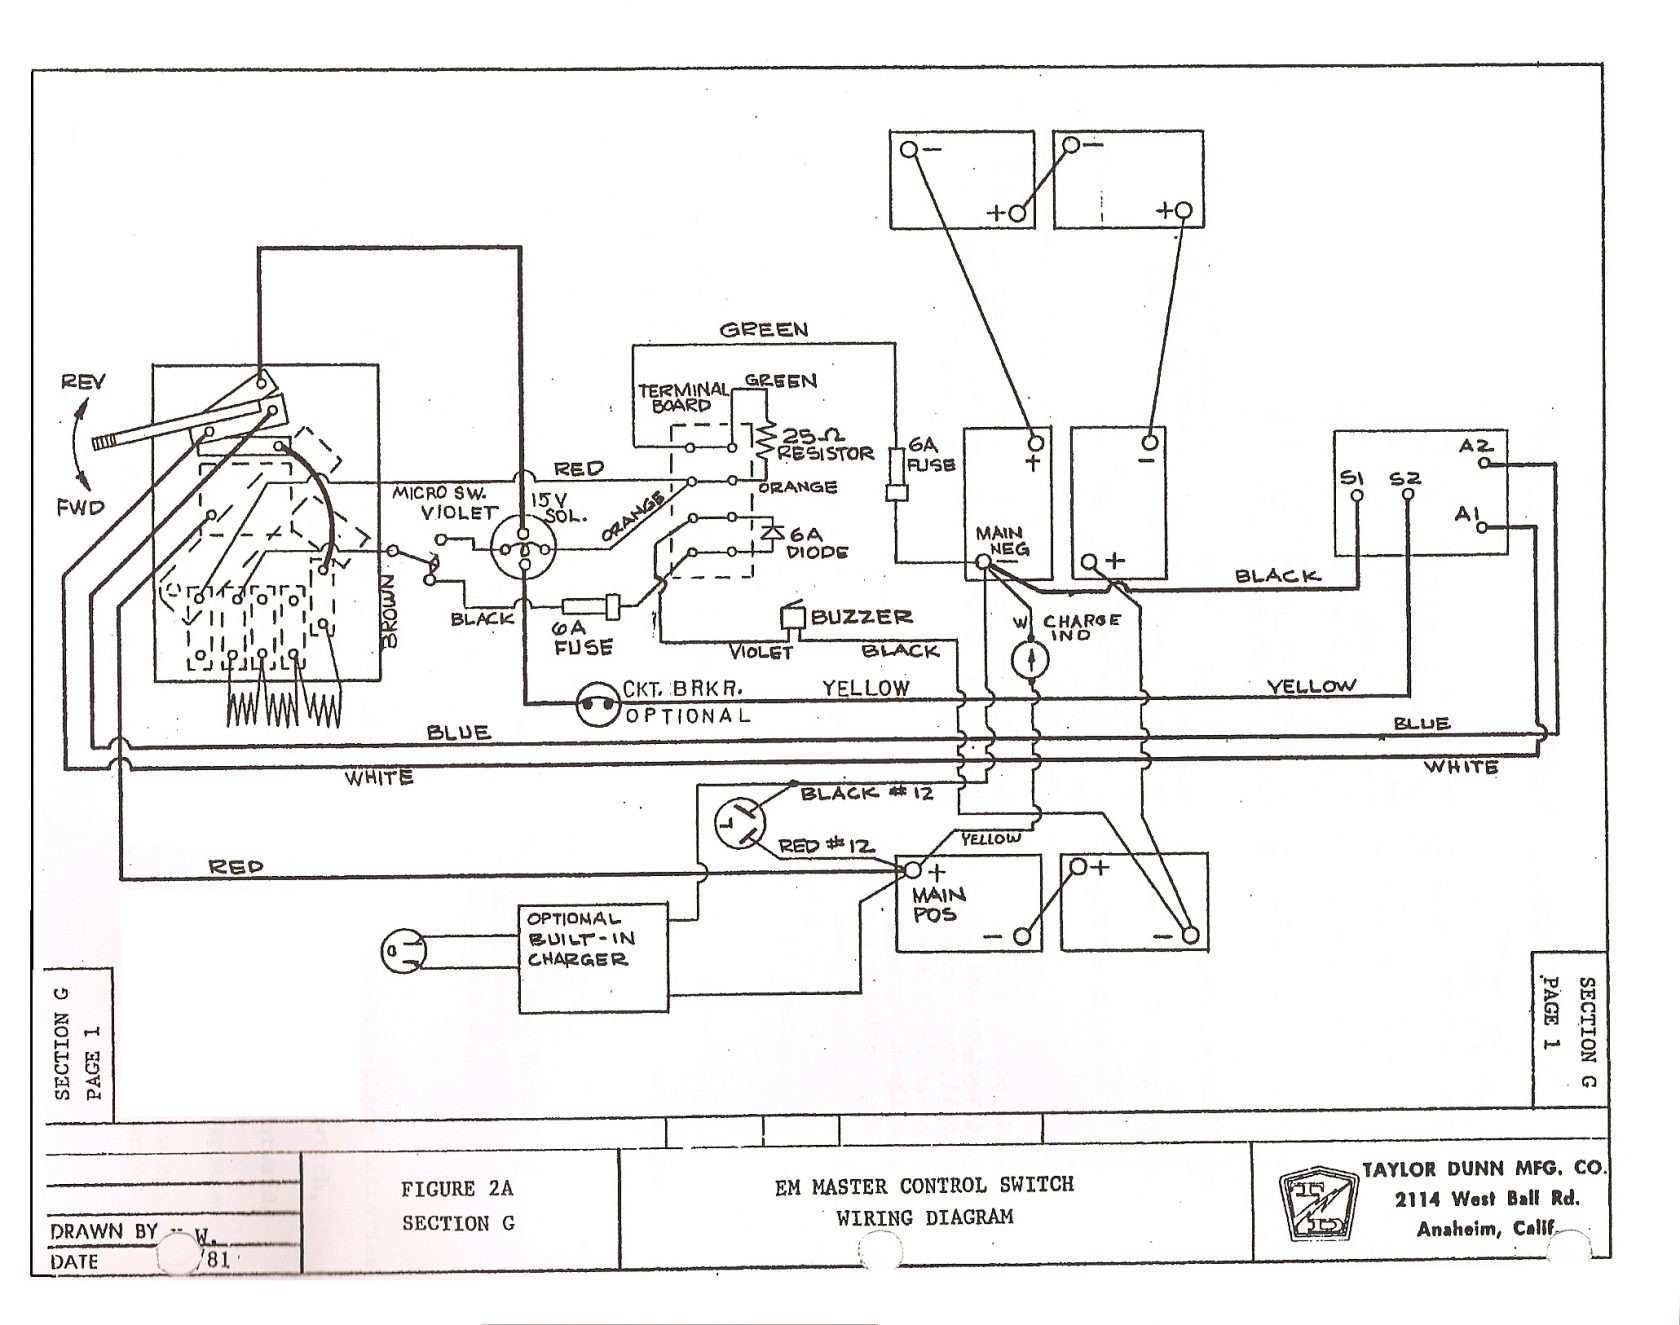 hight resolution of taylor dunn 36 volt wiring diagram 2002 club car ignition wiring diagram free wiring diagram